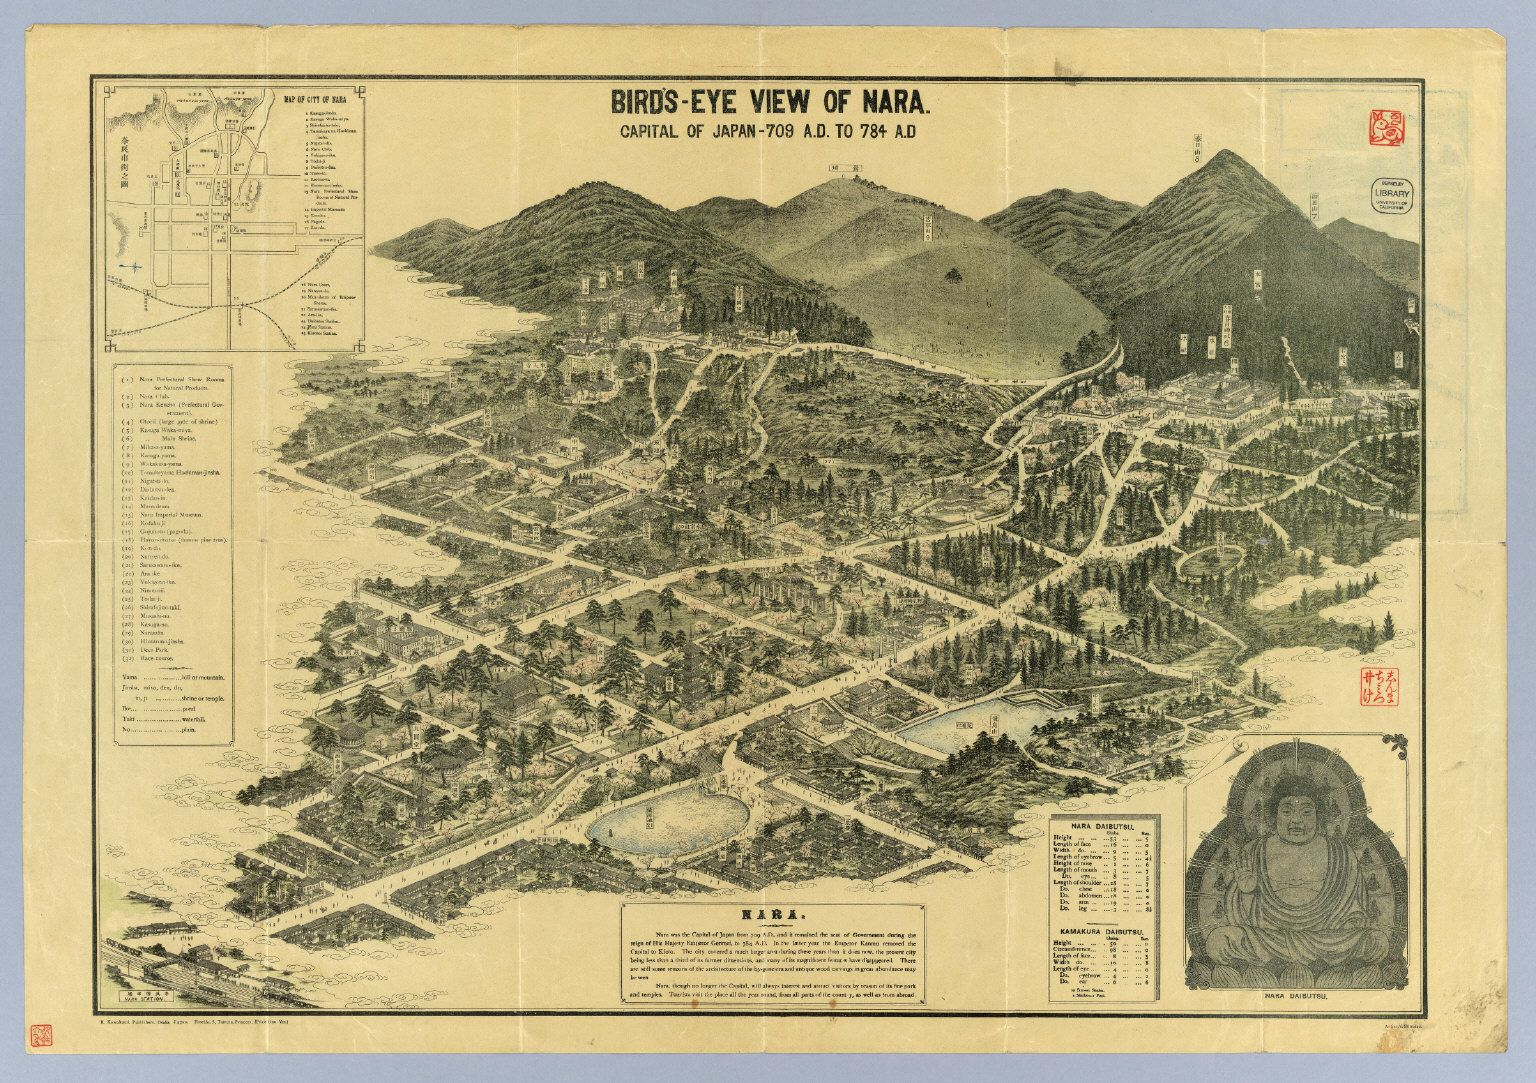 Birds eye view of nara japan capital of japan from 709 to 784 birds eye view of nara japan capital of japan from 709 to gumiabroncs Choice Image